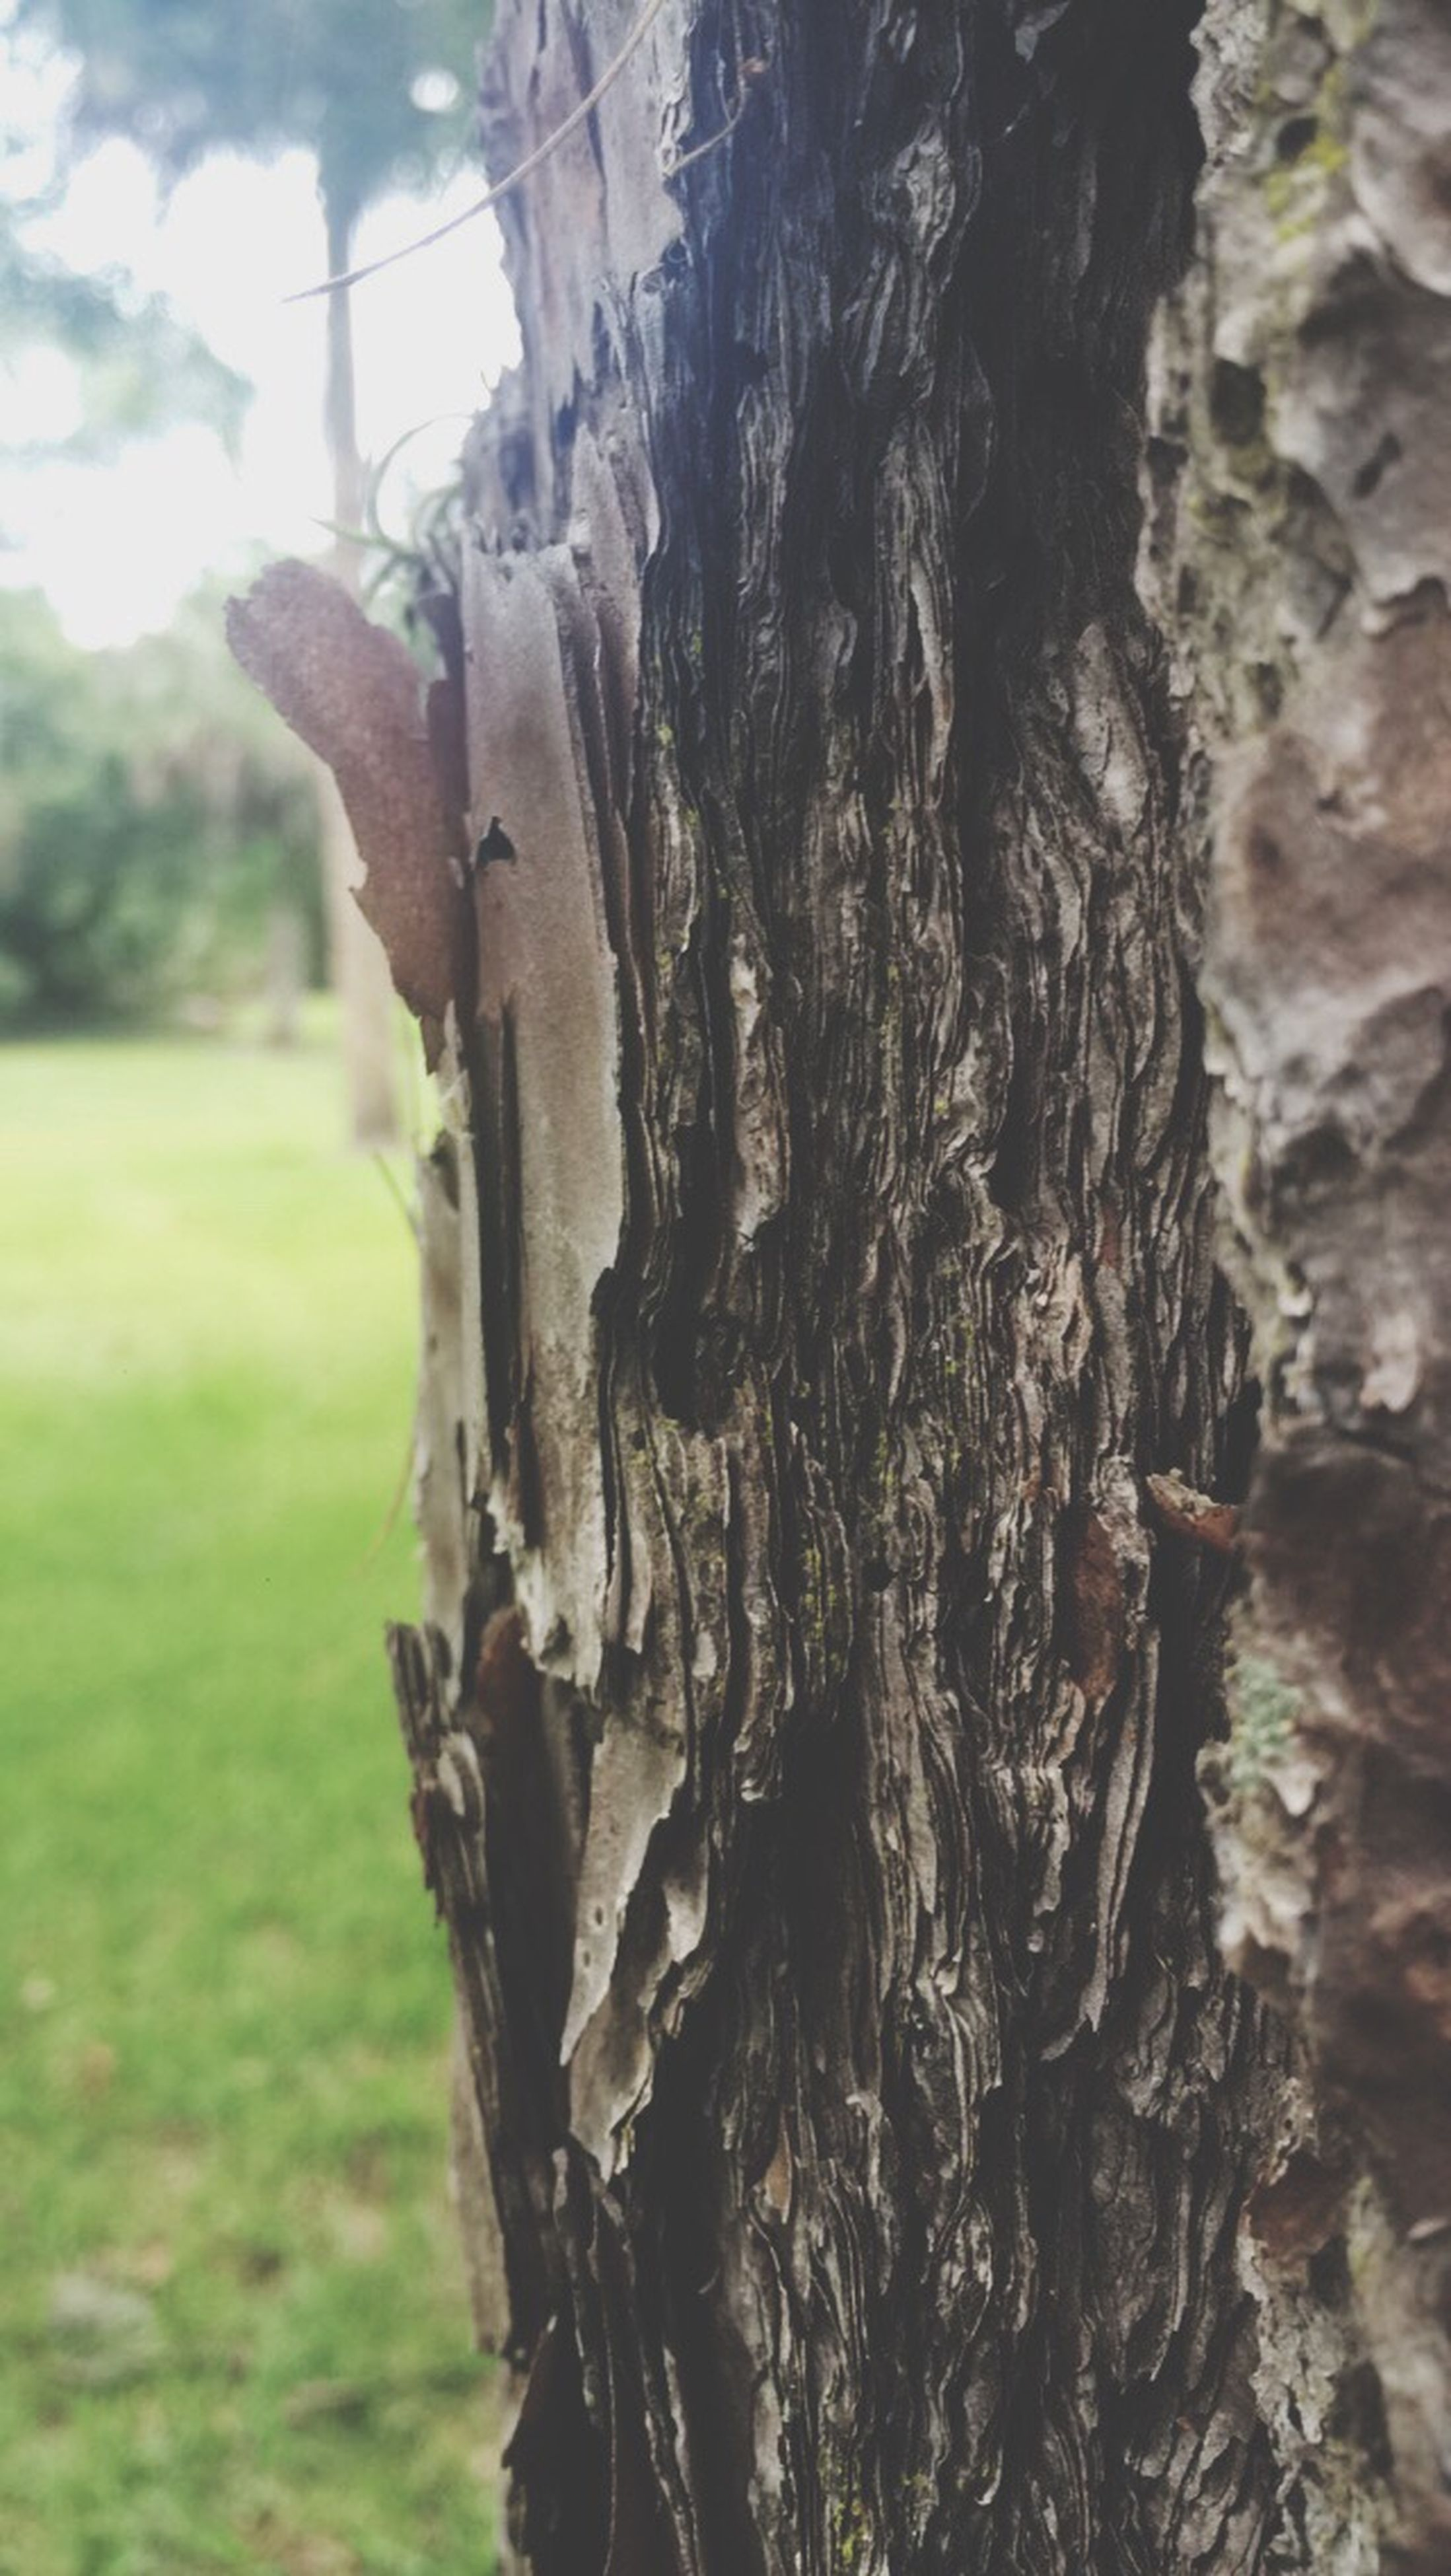 tree trunk, tree, focus on foreground, close-up, textured, growth, nature, wood - material, bark, day, outdoors, tranquility, dead plant, no people, sky, field, branch, rough, plant, sunlight